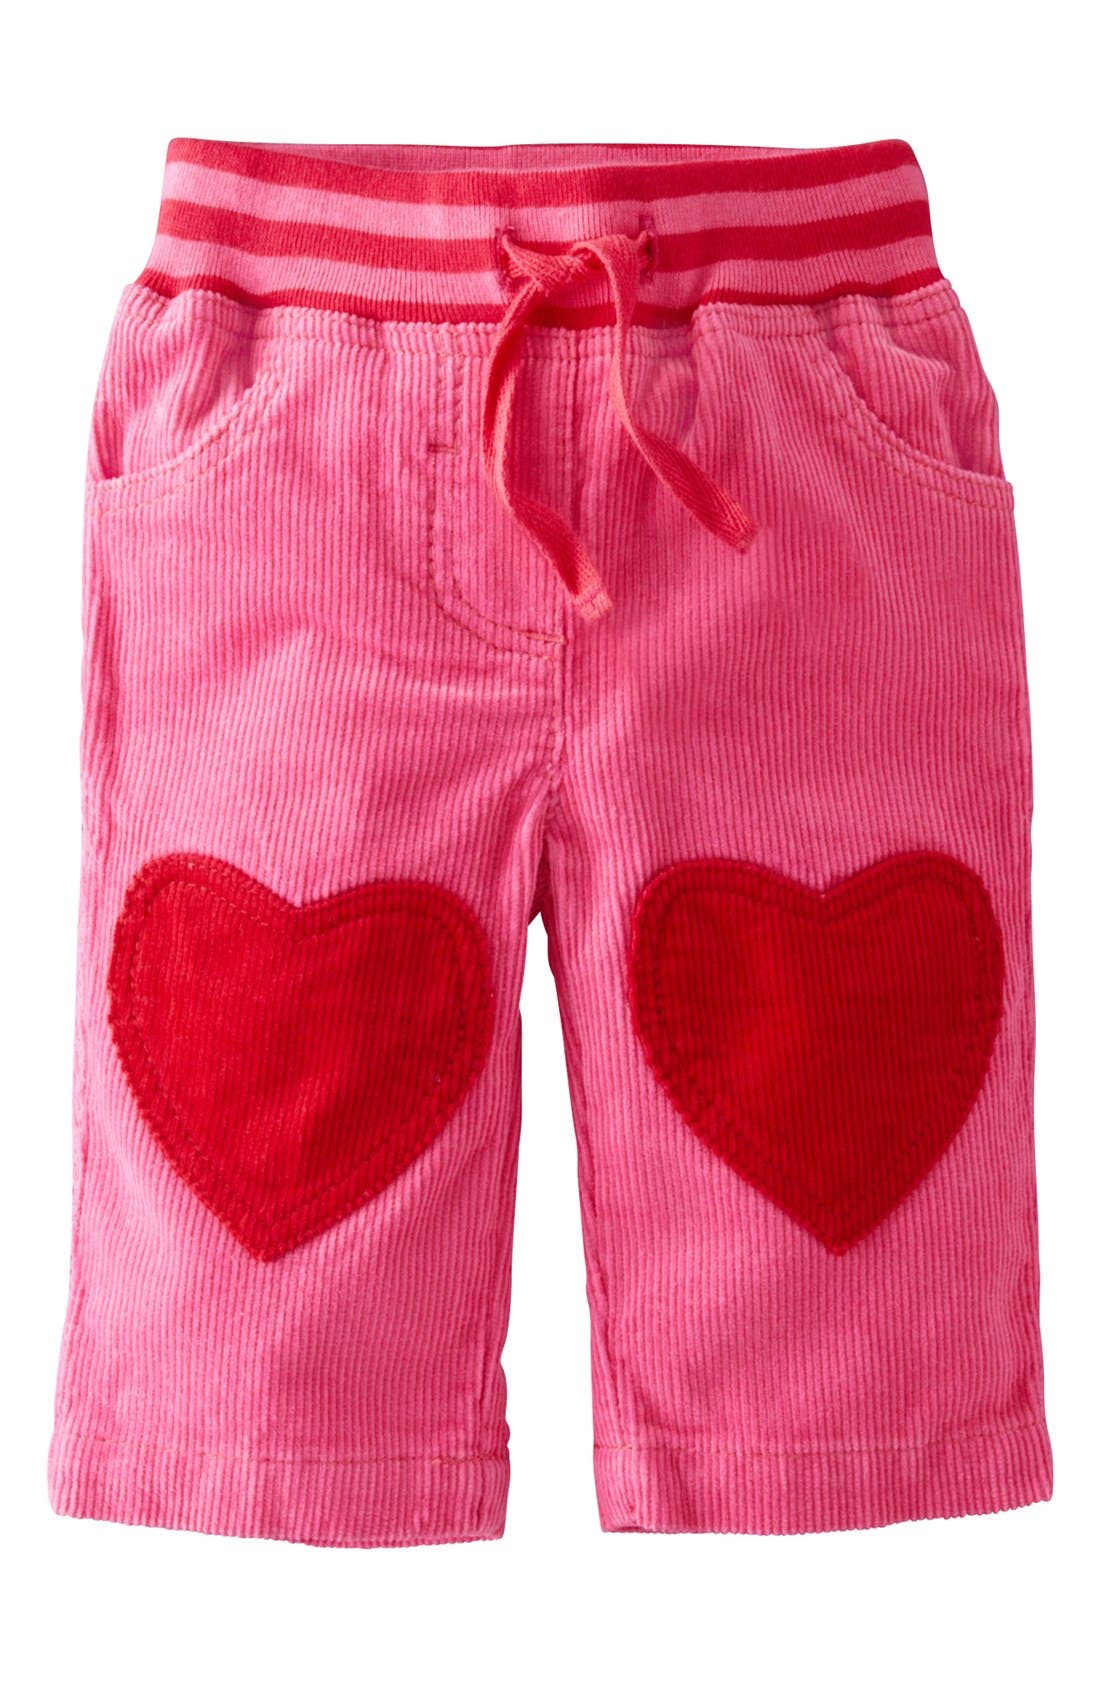 Alternate Image 1 Selected - Mini Boden Heart Patch Pants (Baby Girls)